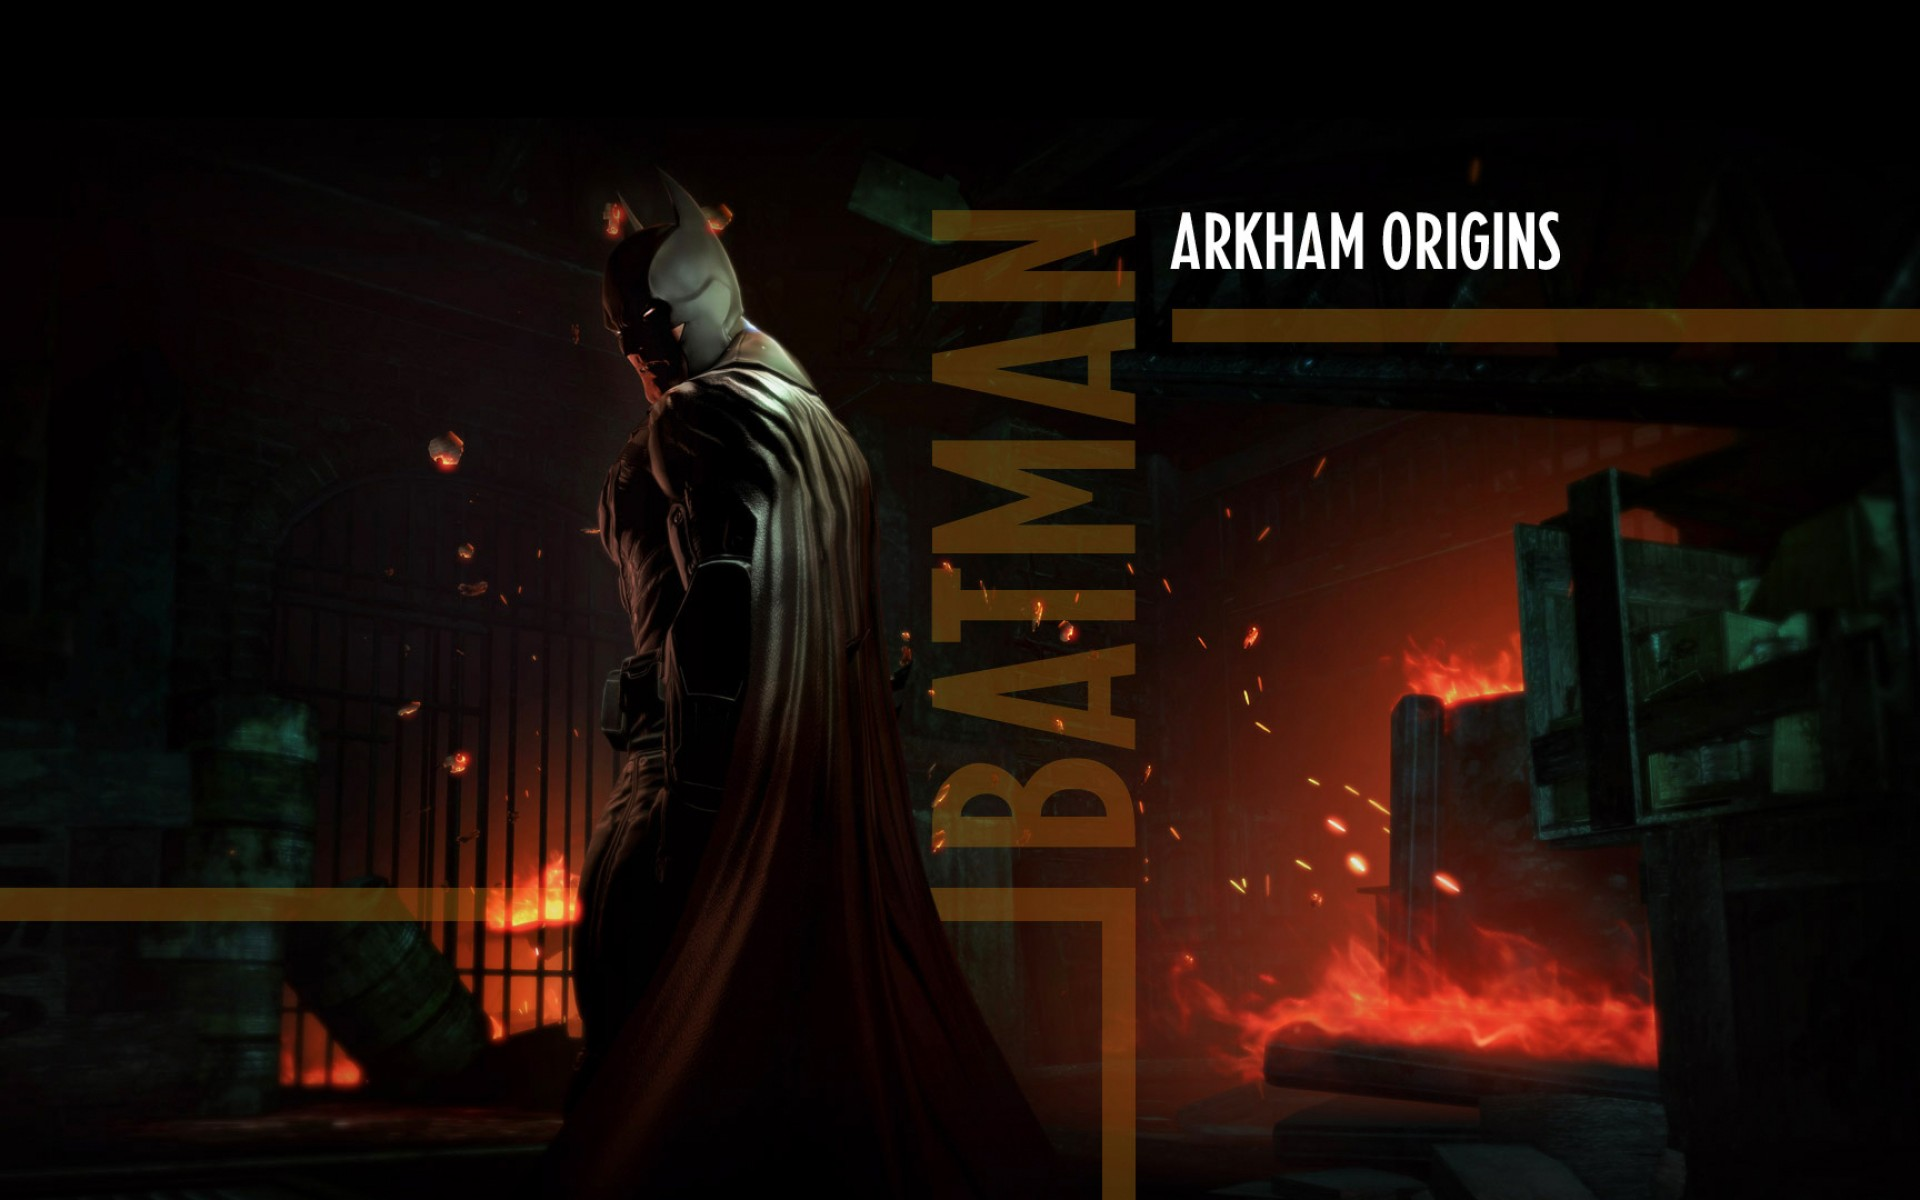 Batman Arkham Origins Game Hd Wallpapers All Hd Wallpapers